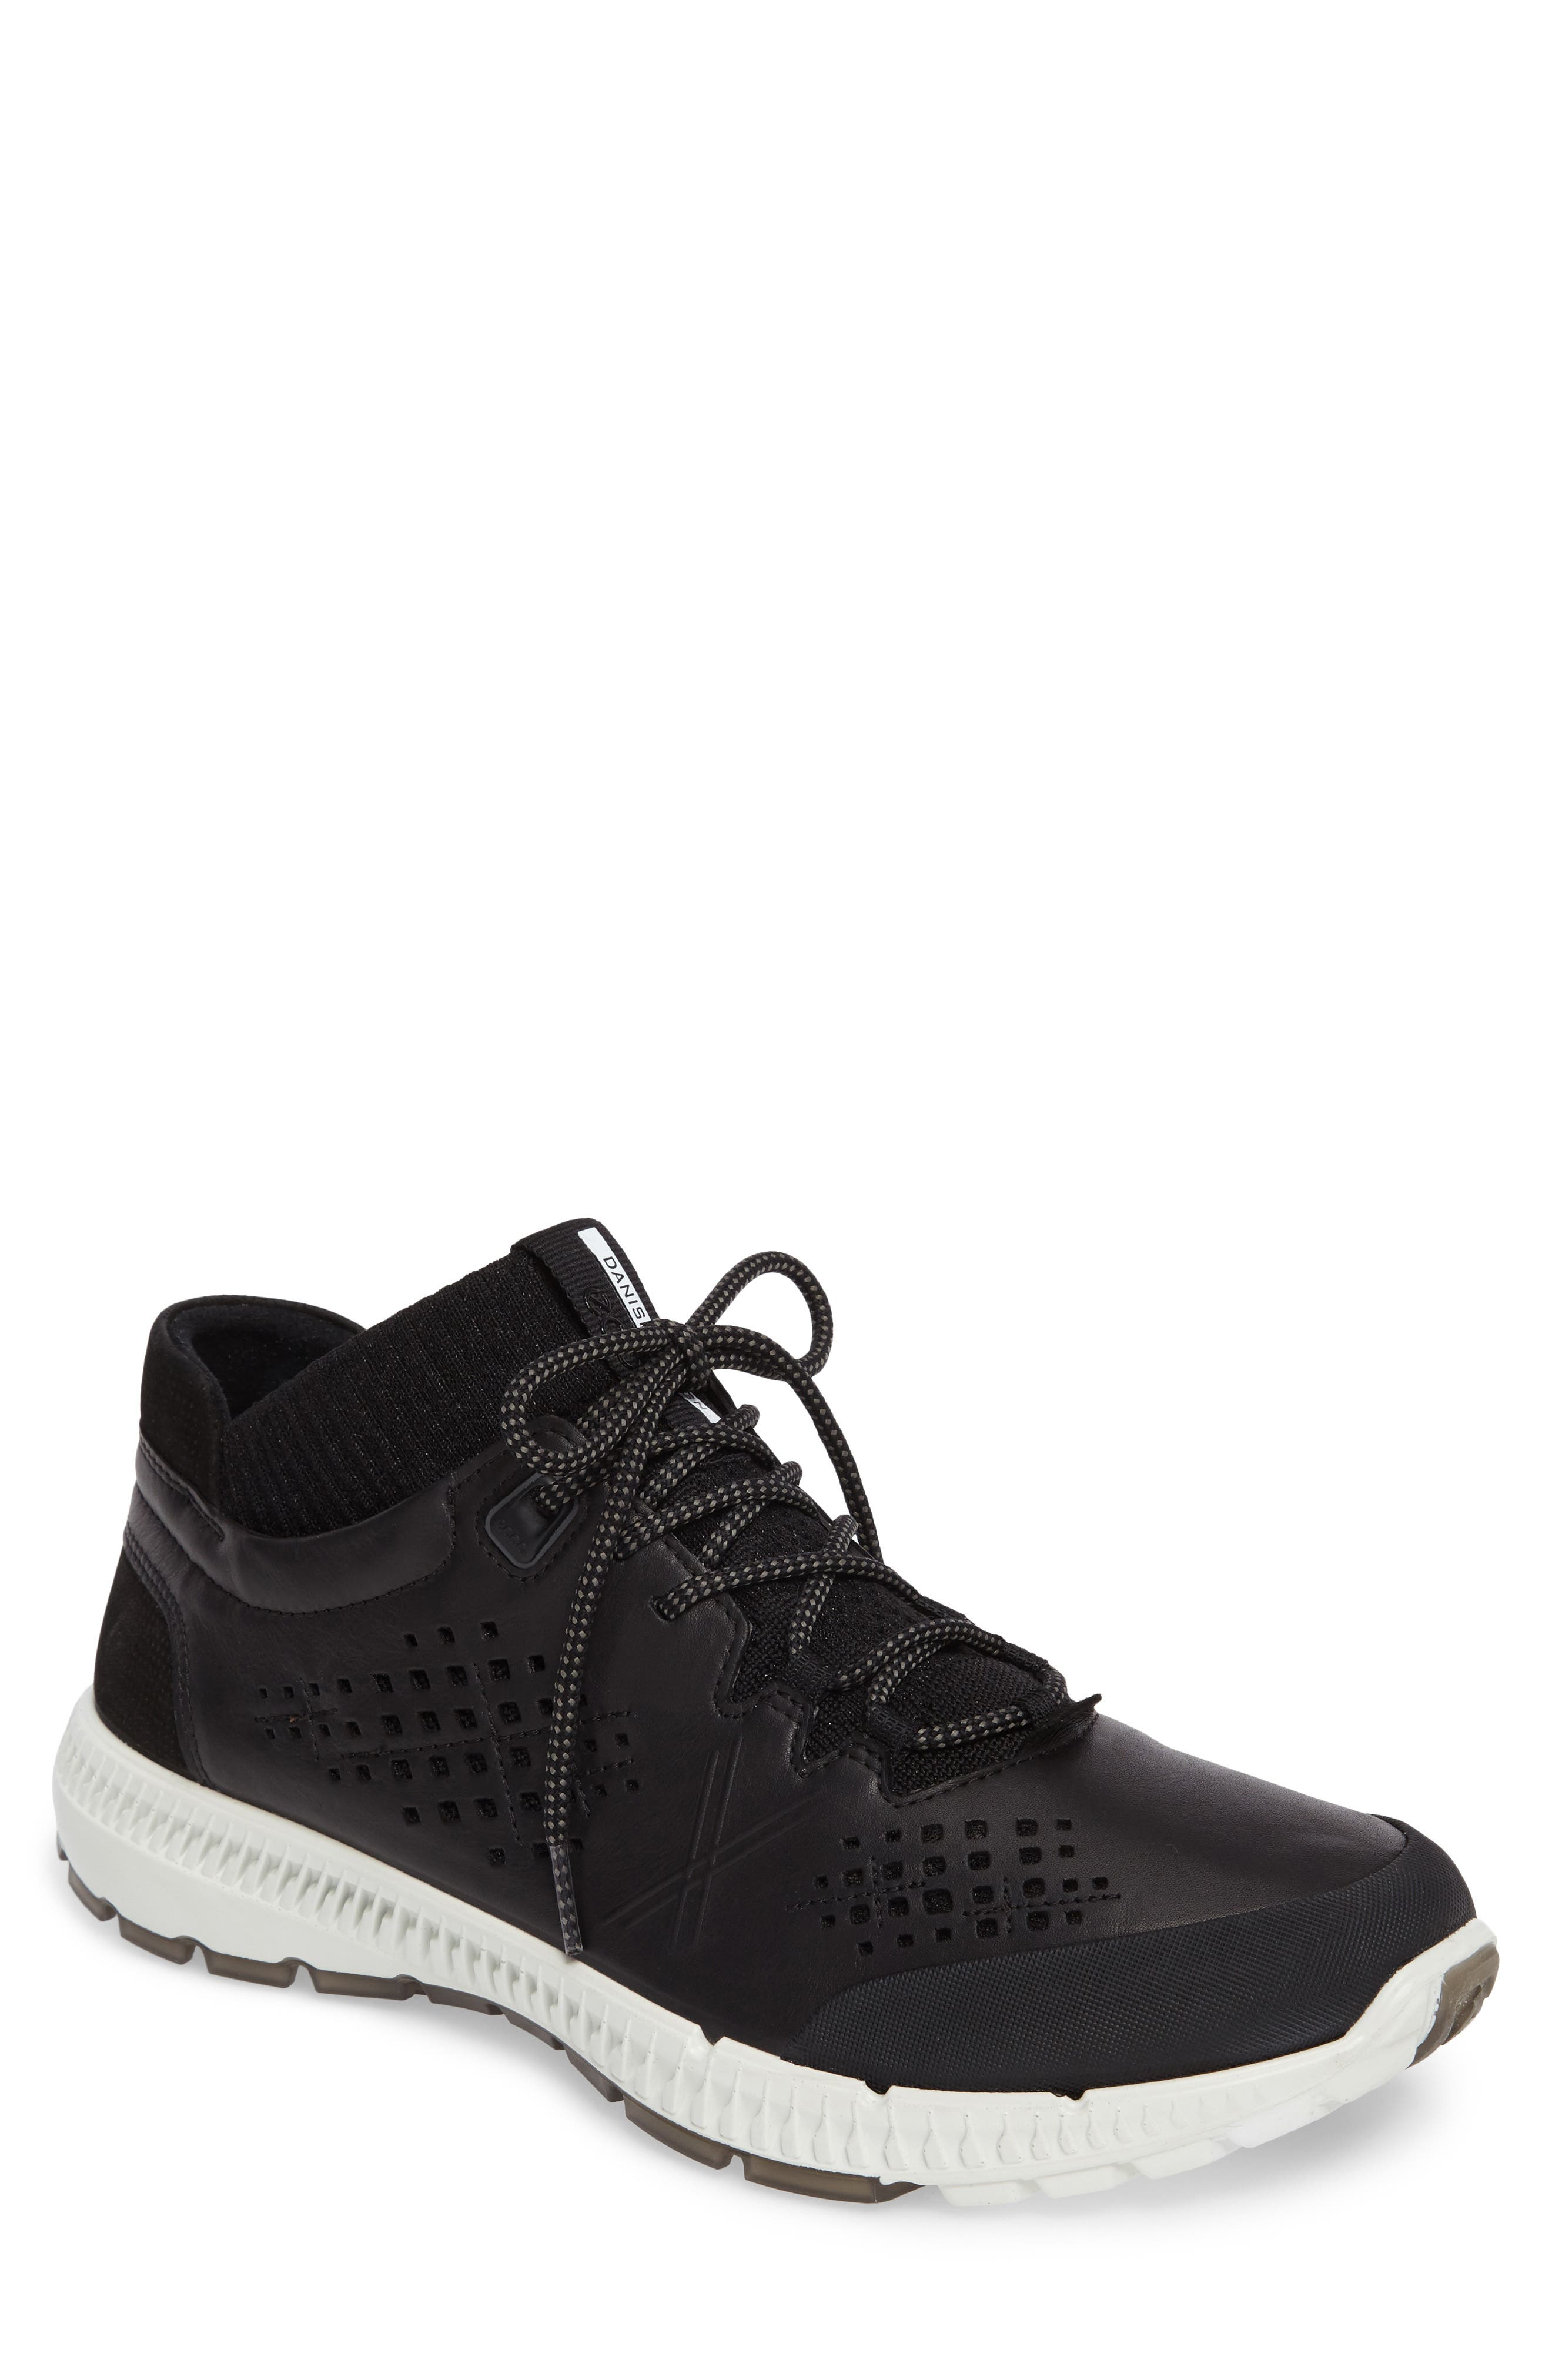 Intrinsic Mid Sneaker,                             Main thumbnail 1, color,                             Black Leather